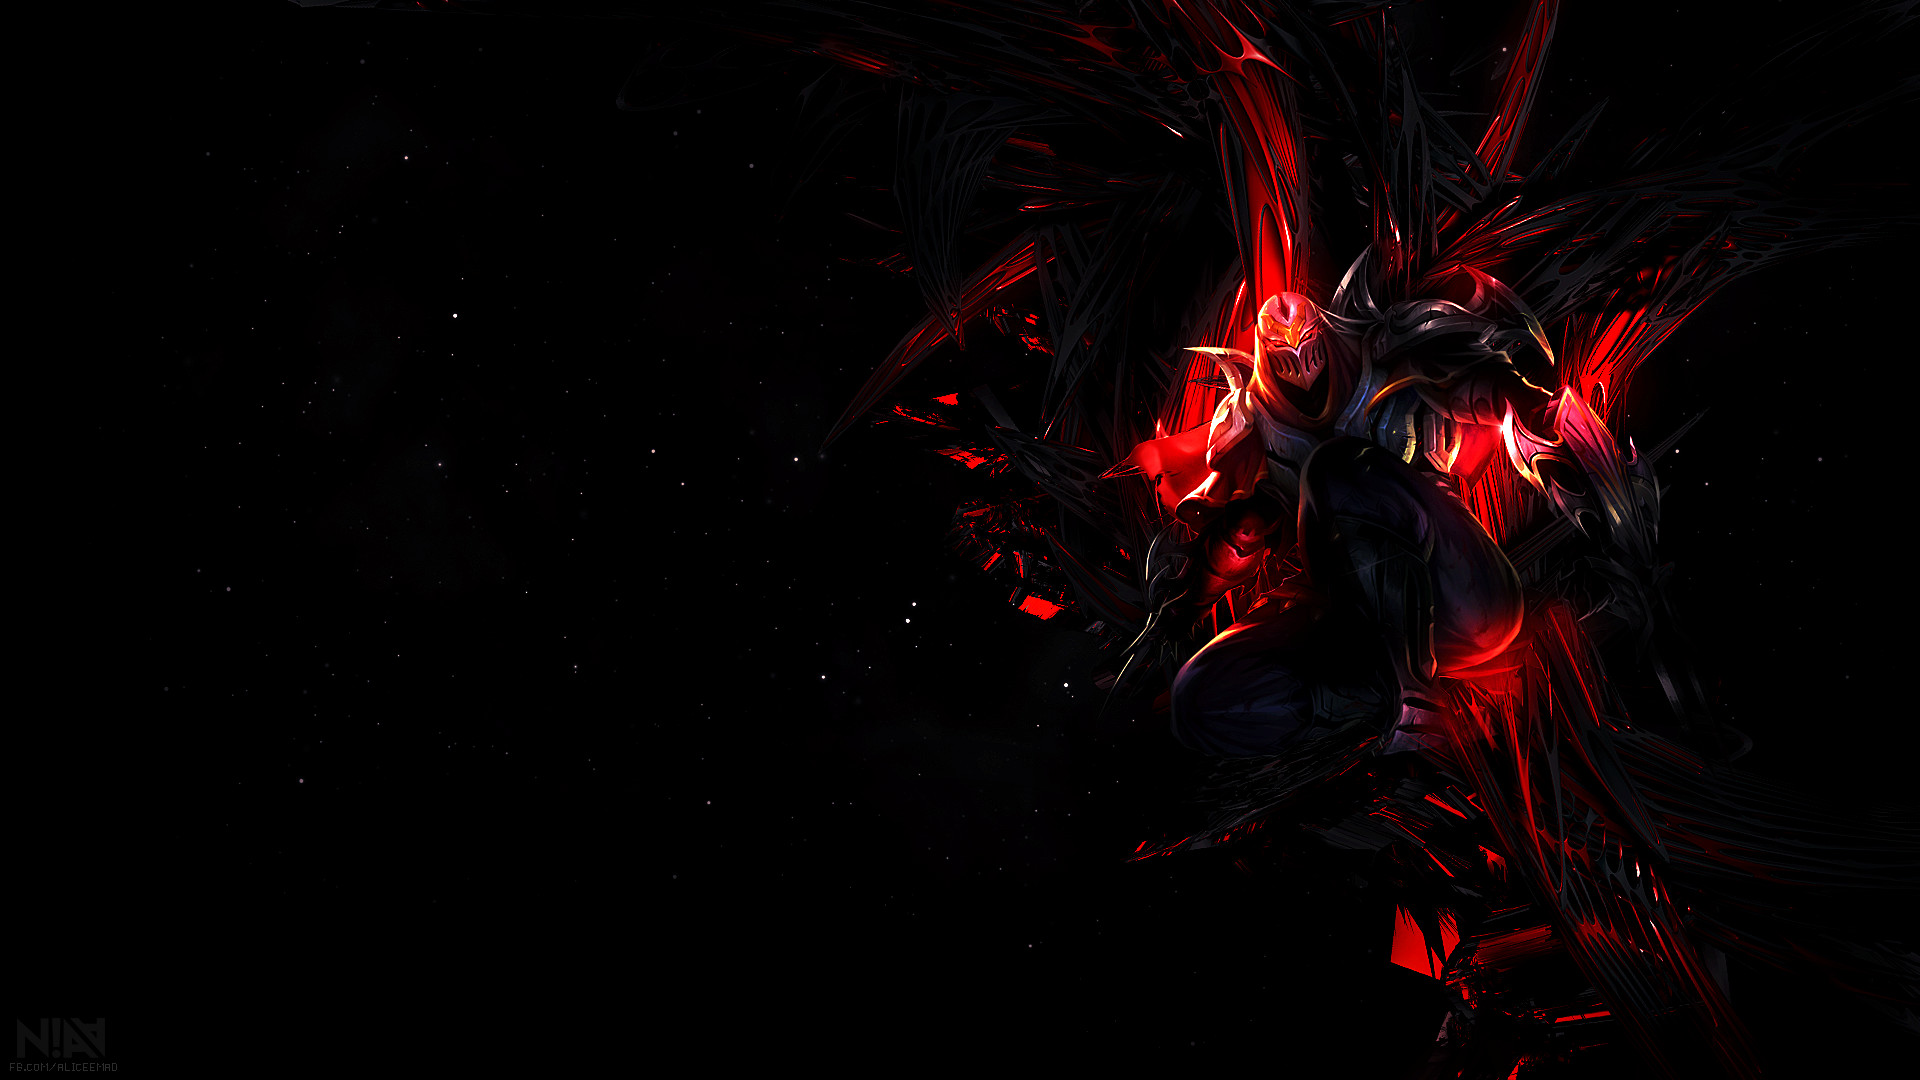 Res: 1920x1080, ... League of Legends Wallpaper - Zed by AliceeMad